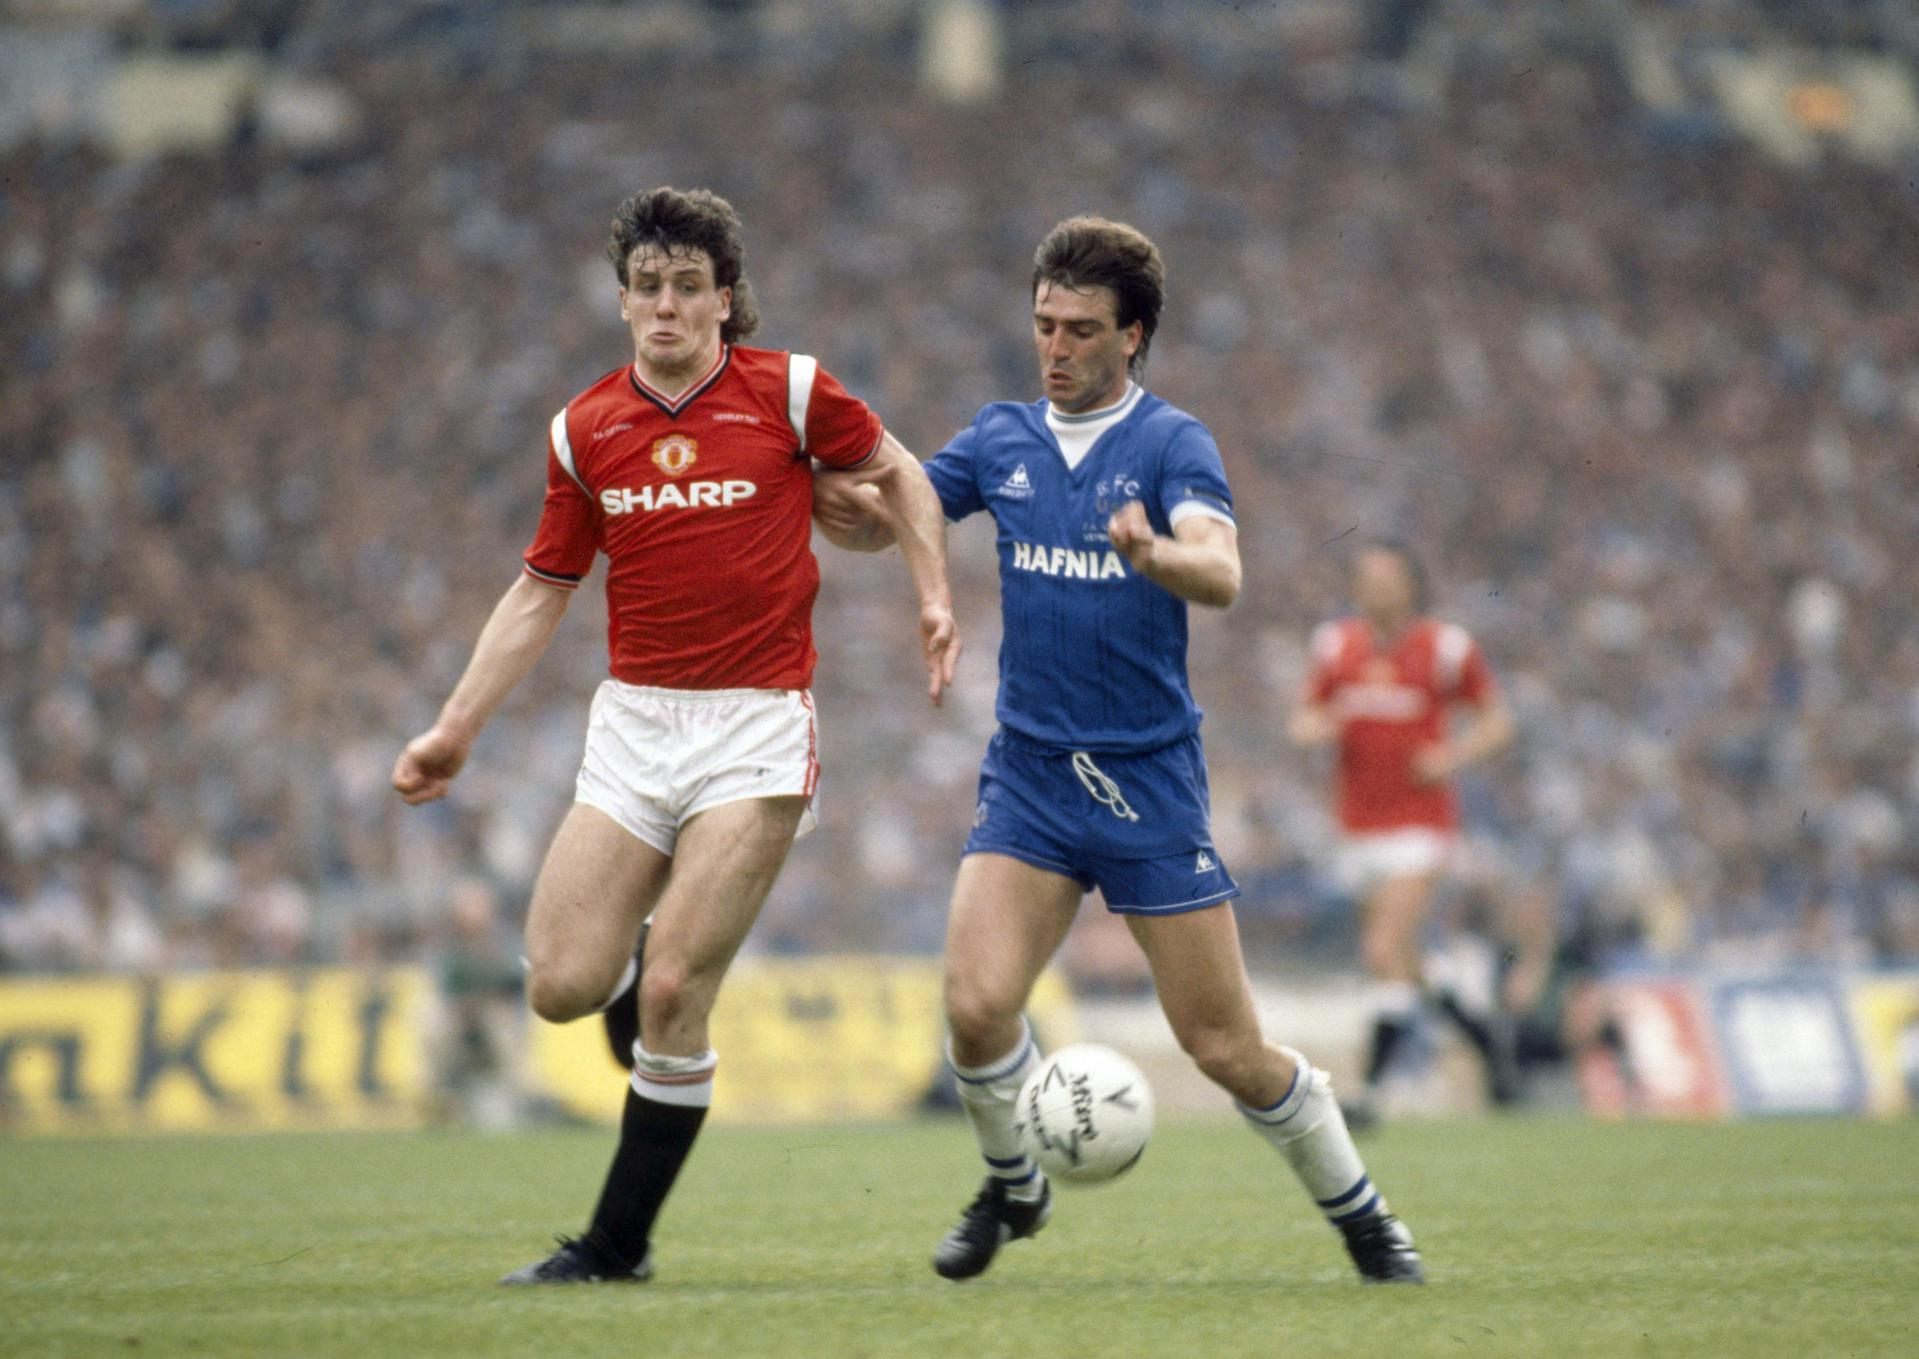 Gallery Of Images With Players Who Played For Manchester United And Everton Manchester United